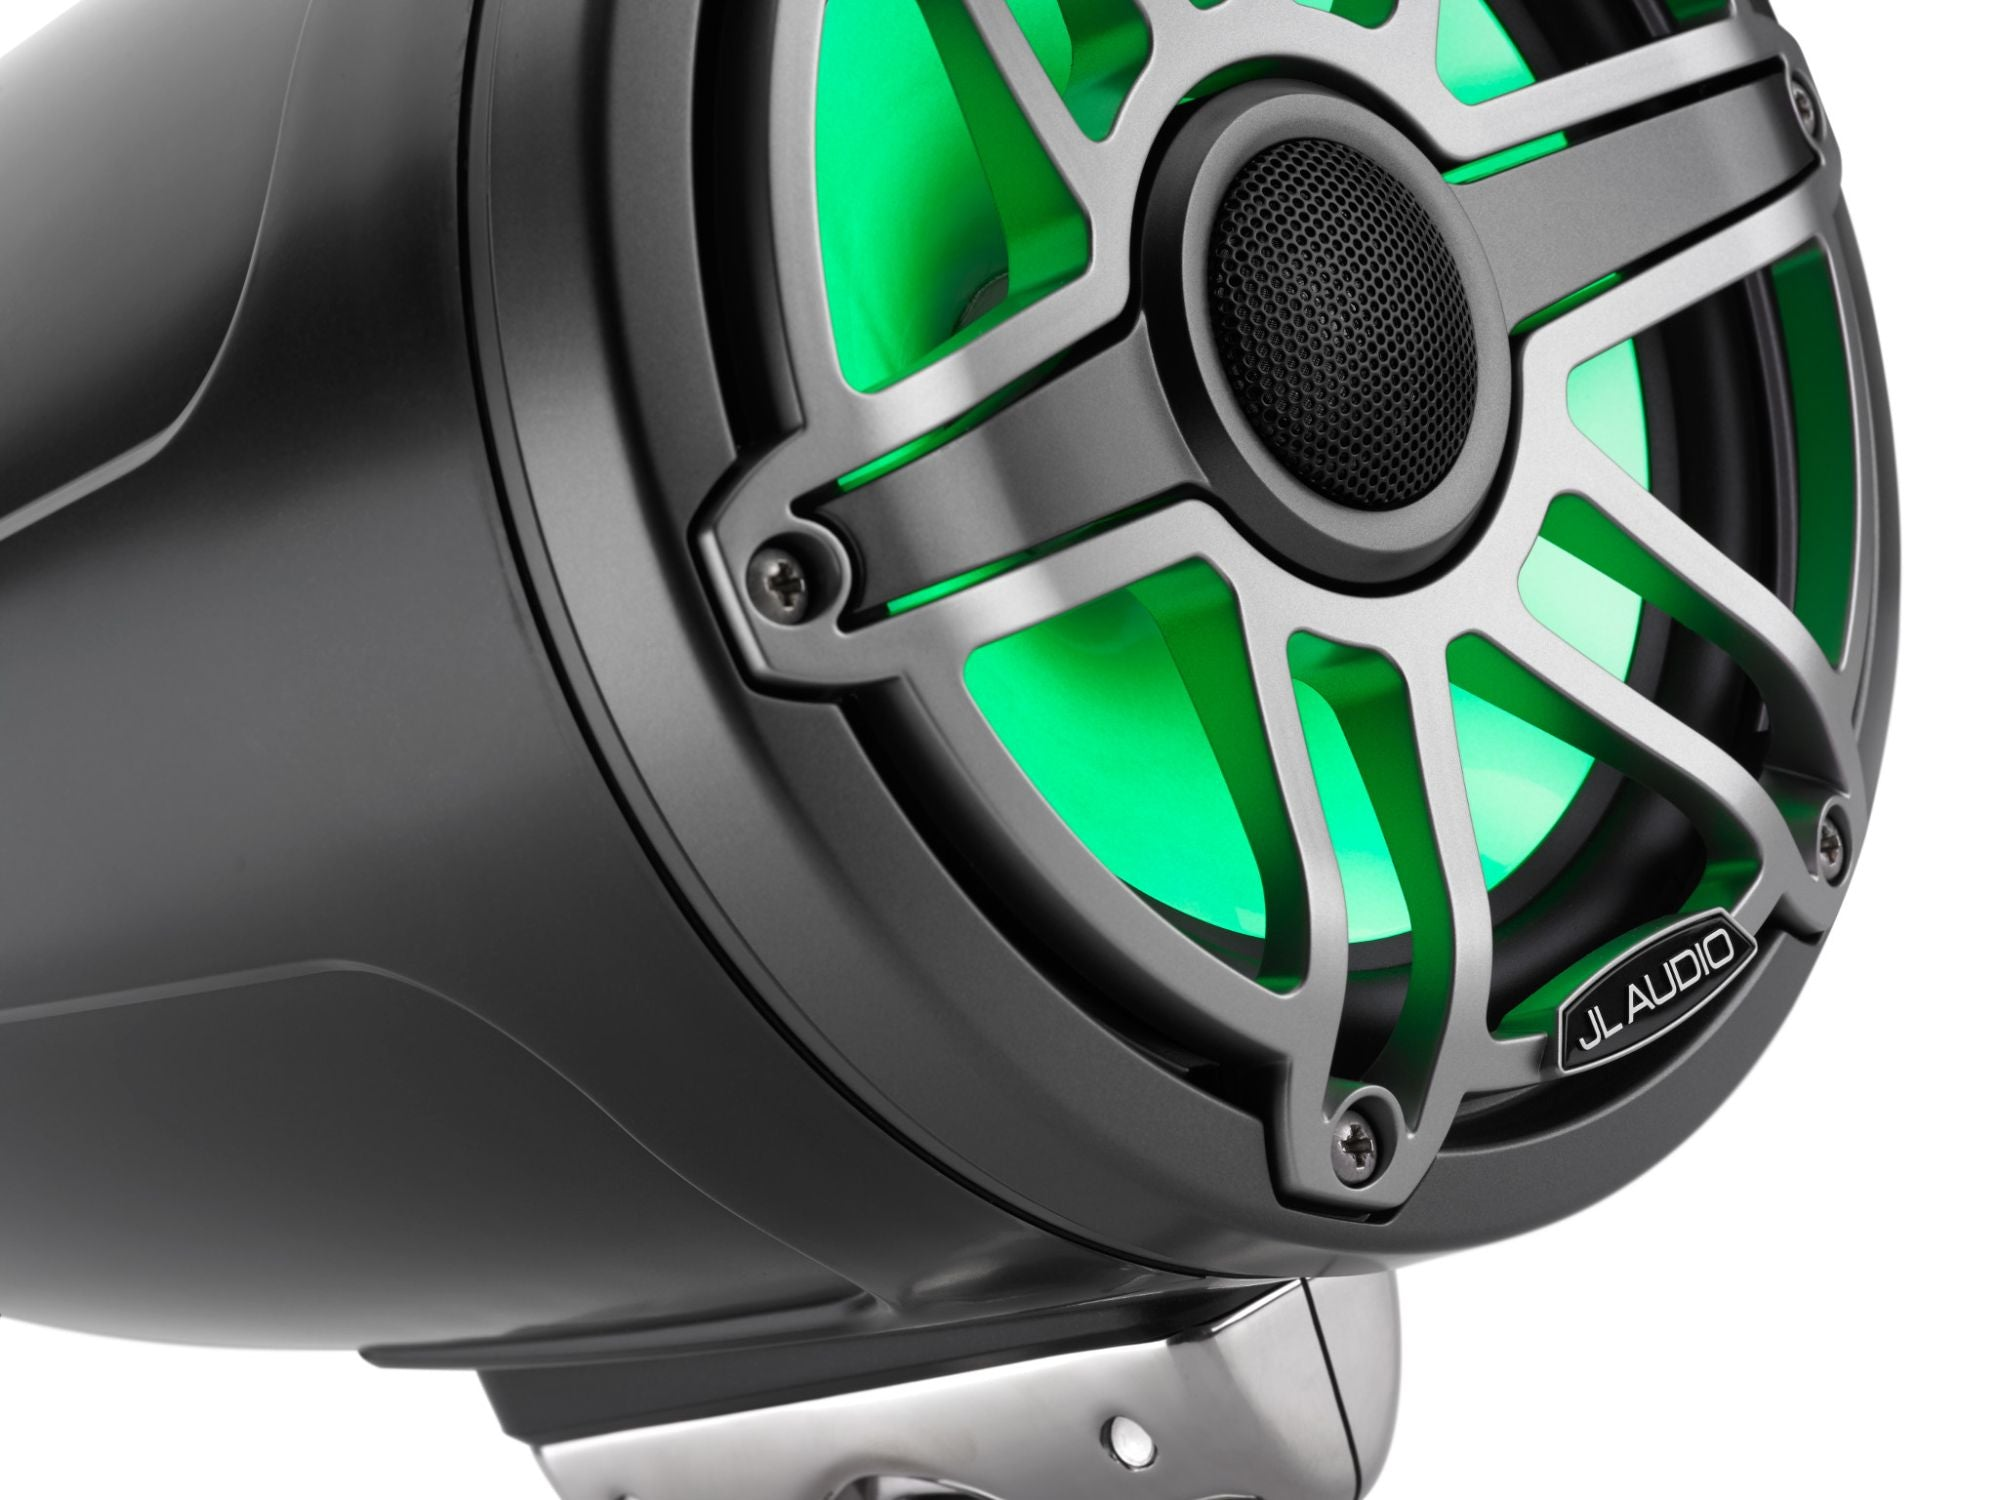 Detail of M6-770ETXv3-Sb-S-GmTi-i Enclosed Speaker Lit with Green